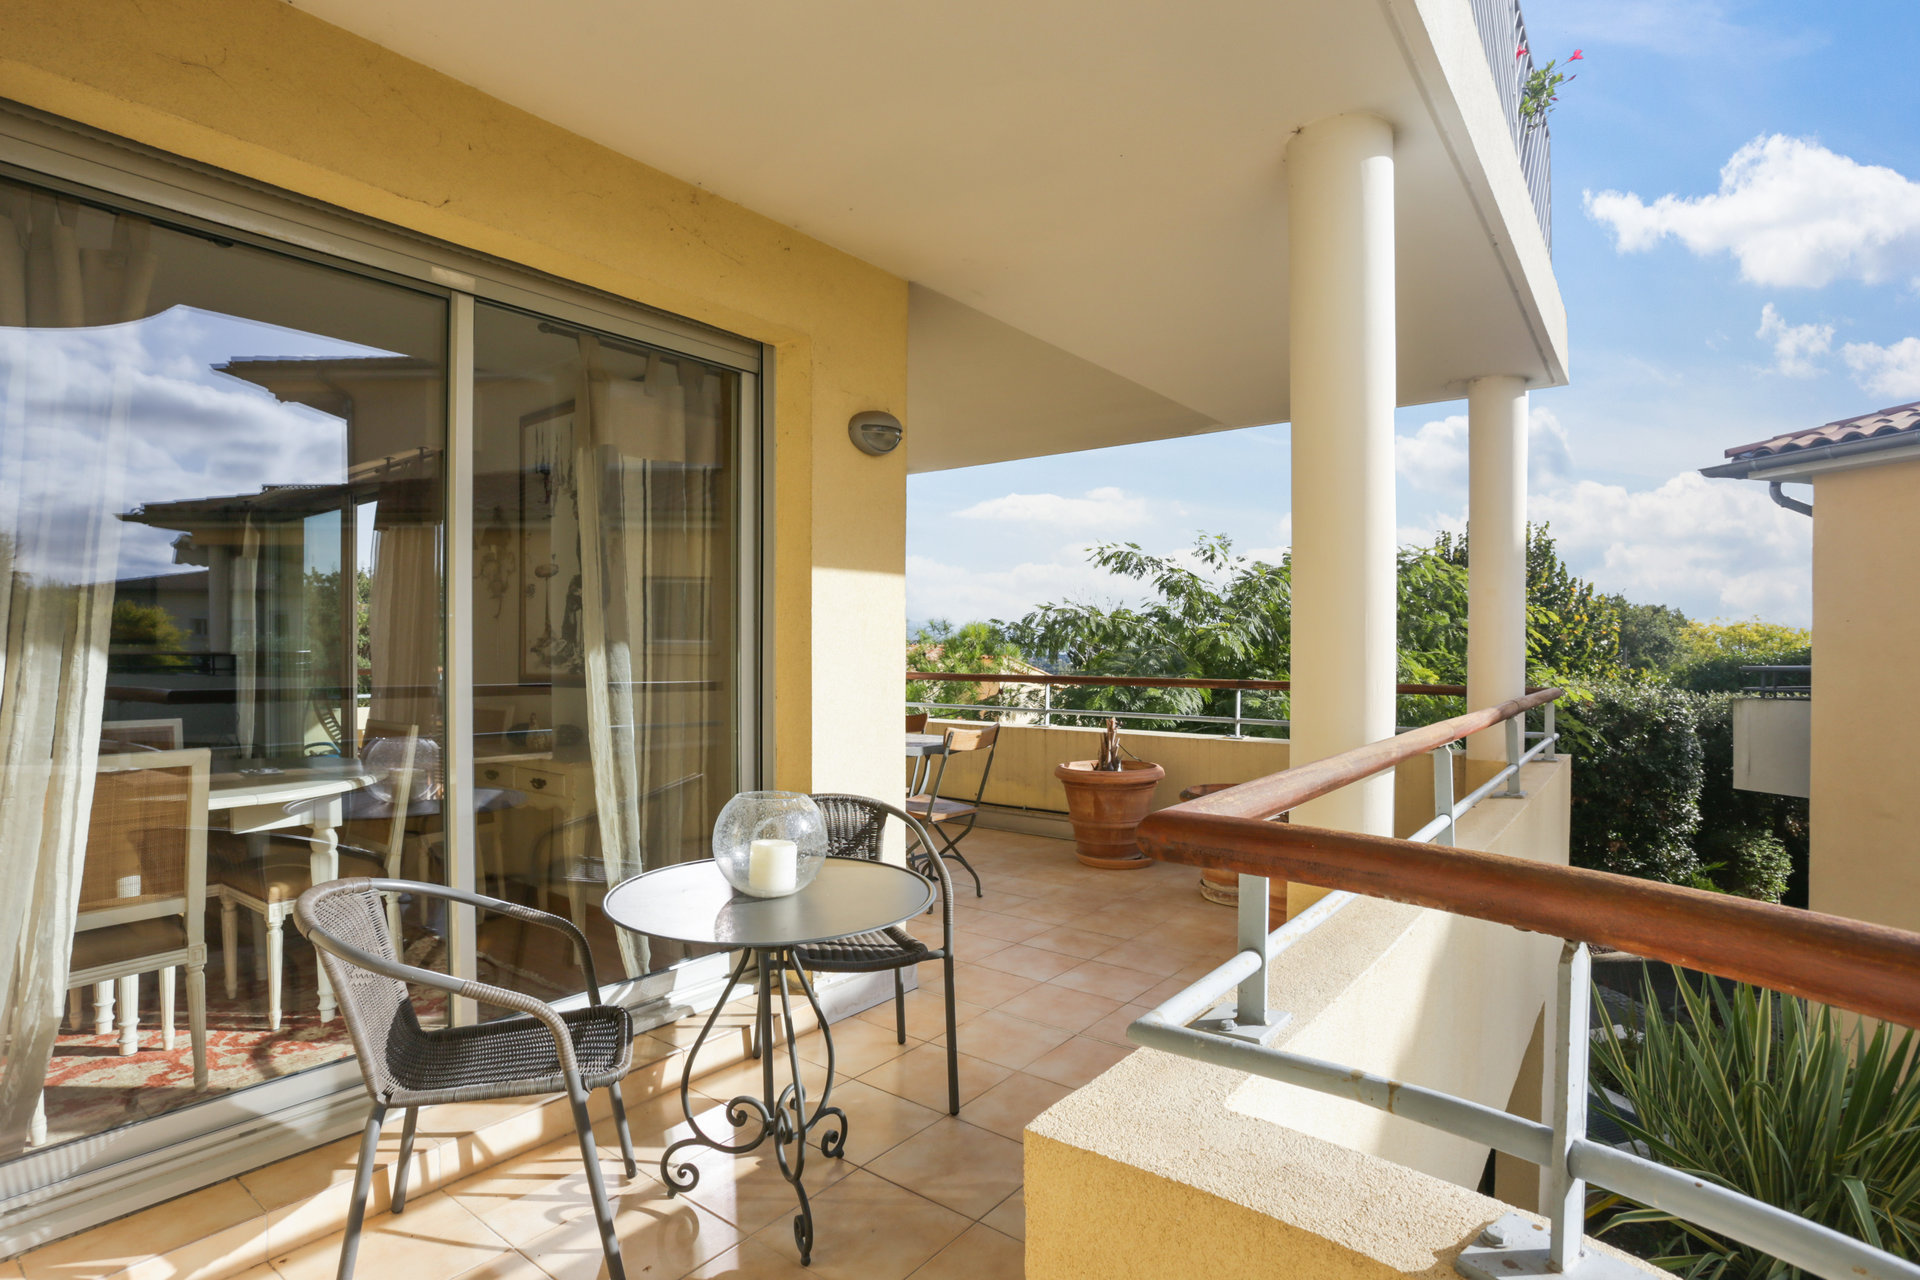 SOLE AGENT - Bright 2 bedroom apartment (88 m²) with large terraces in residence with pool